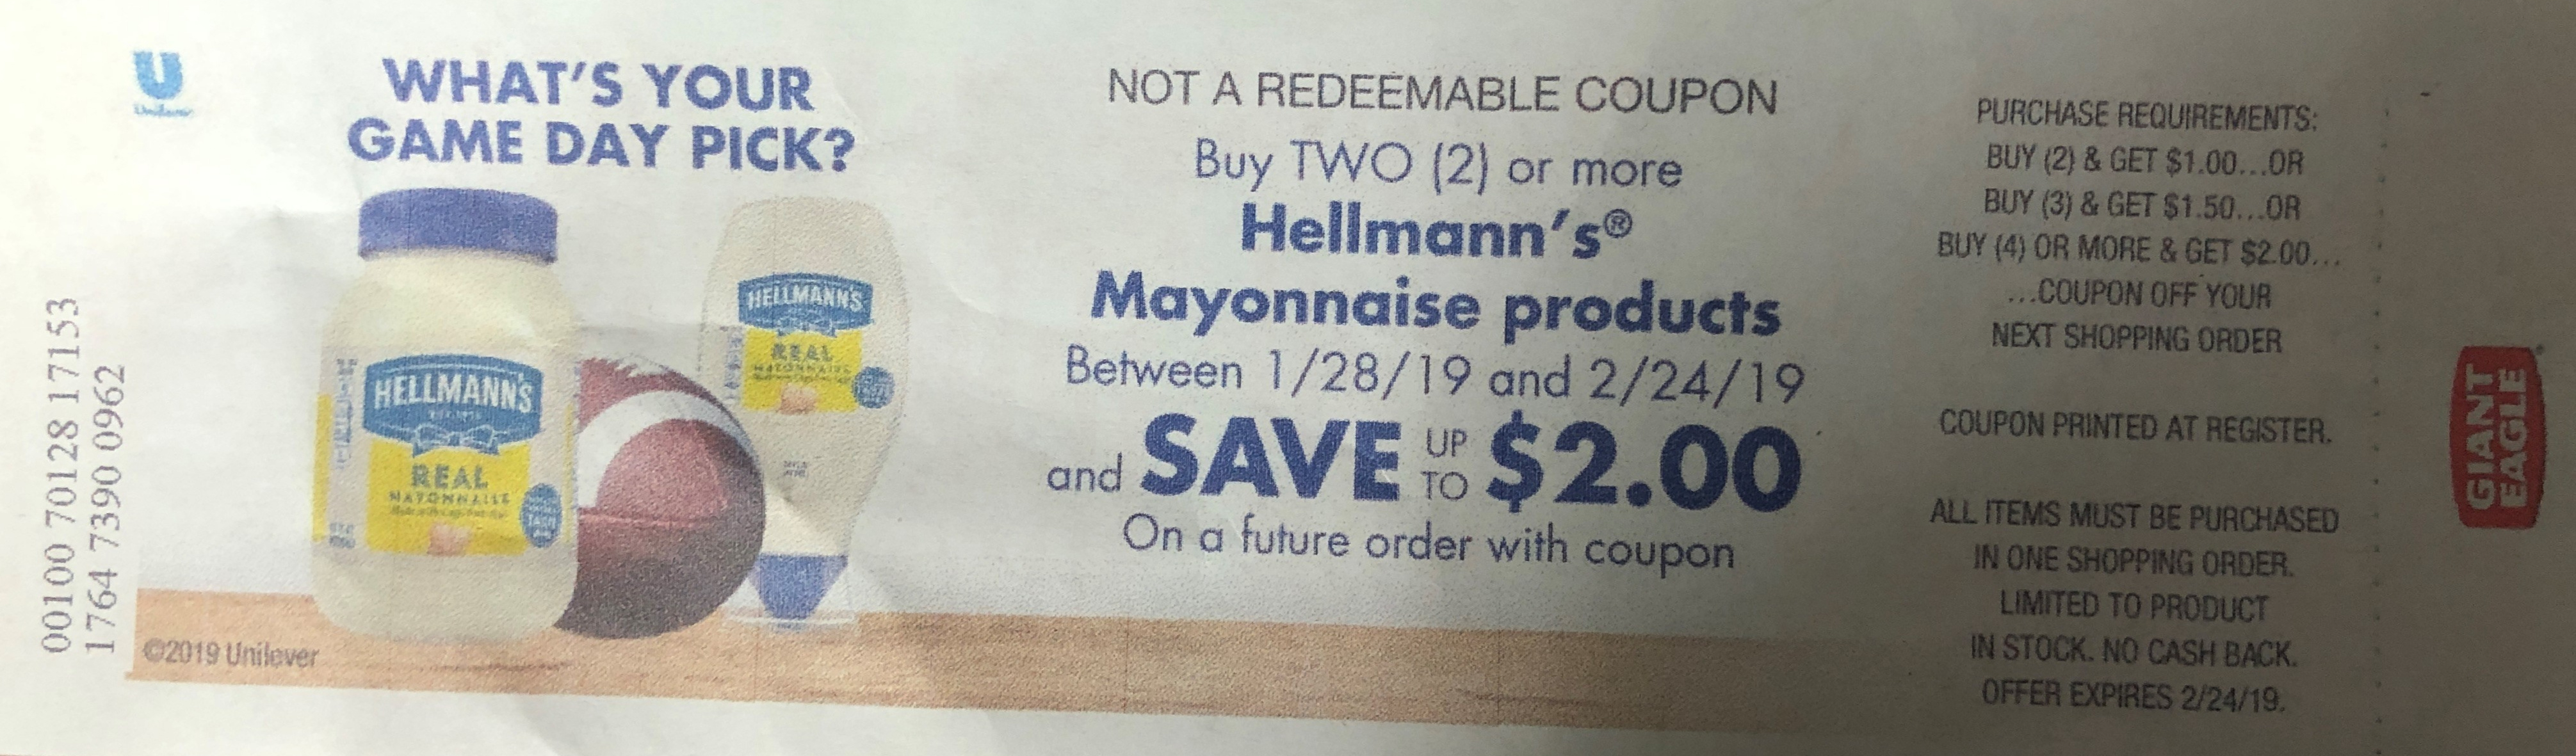 Hellmann's® Coupons (Free) - Hellmann's Mayo Coupons - Free Printable Giant Eagle Coupons